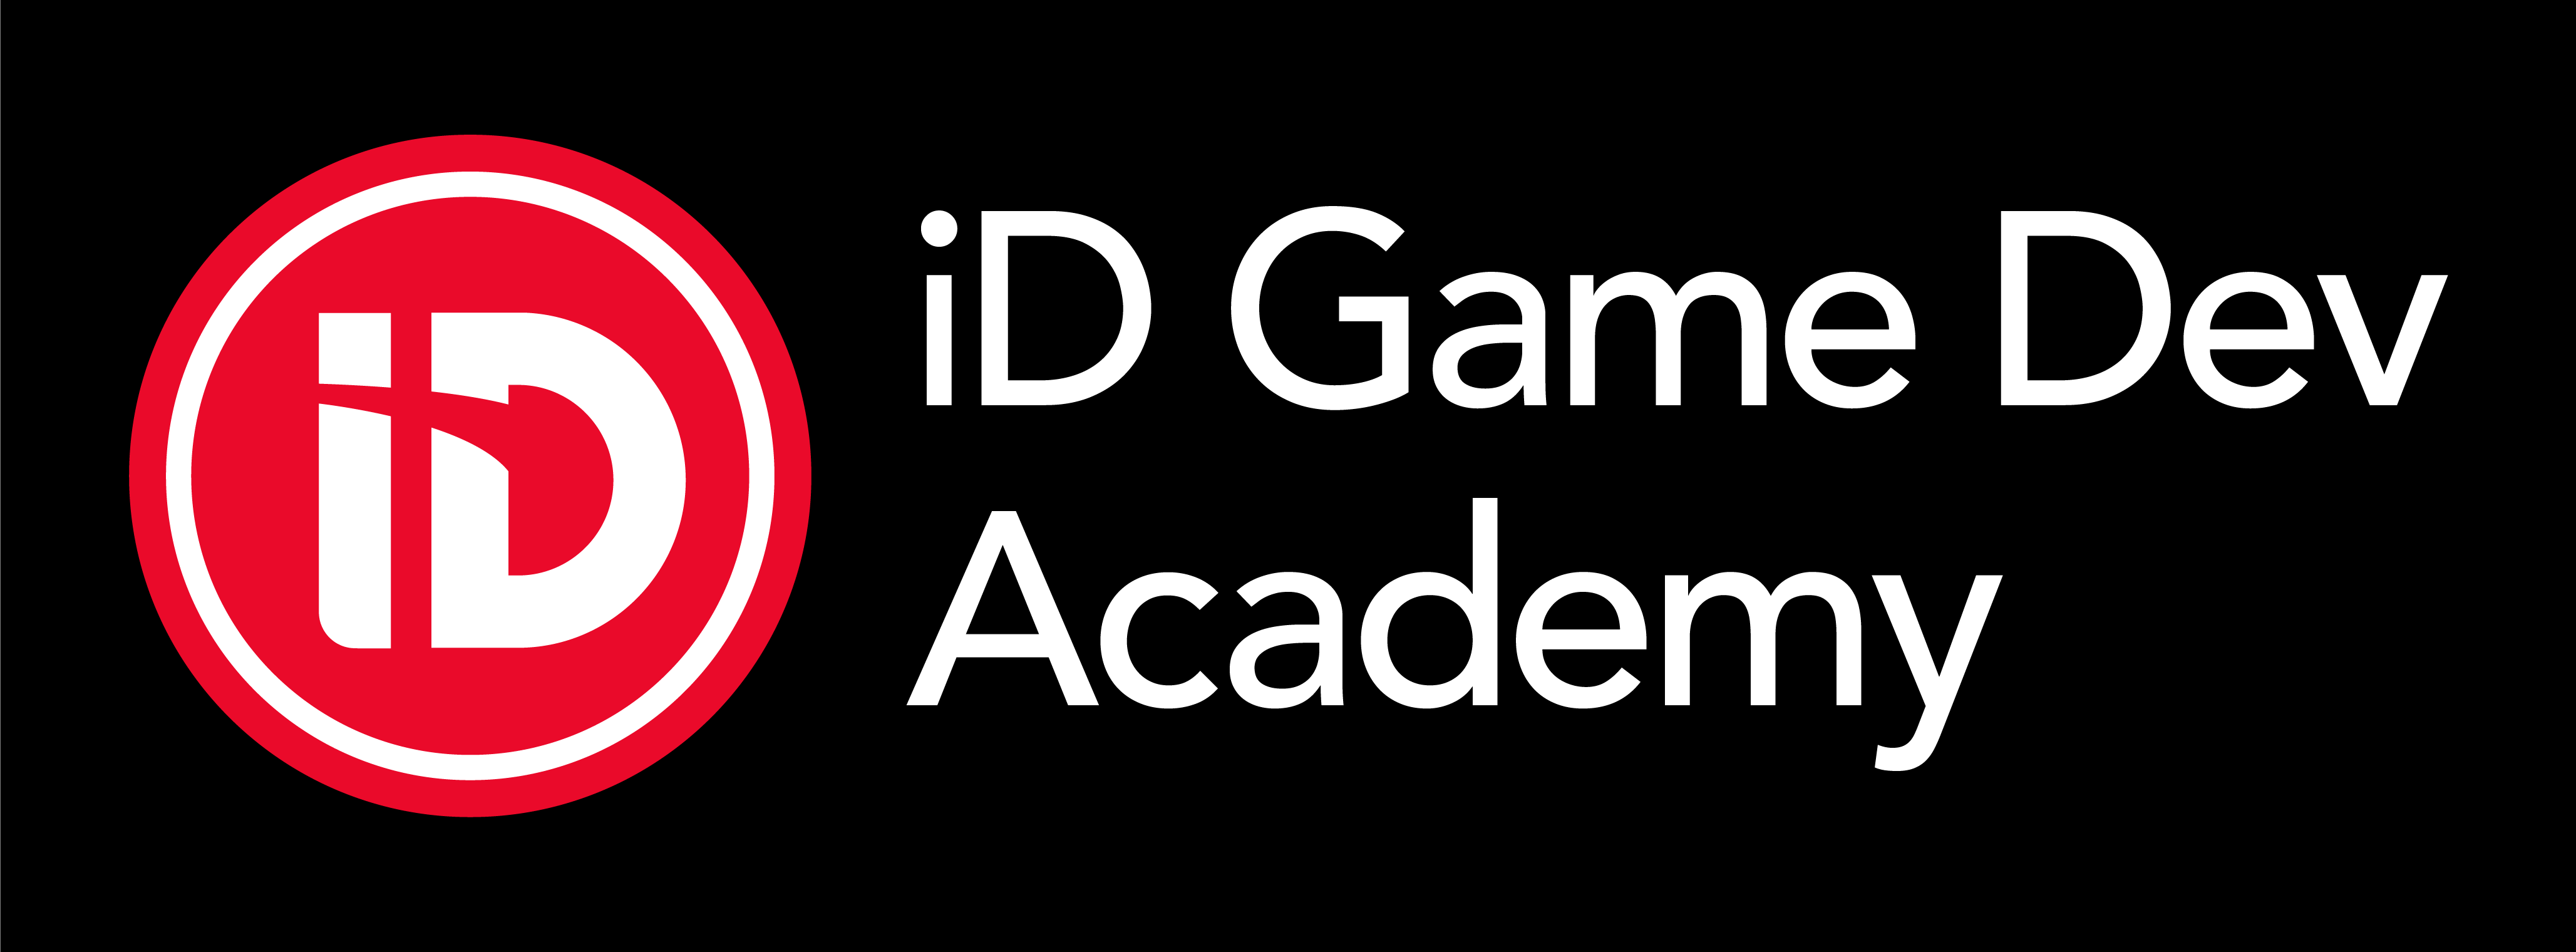 Summer Program iD Game Dev Academy for Teens